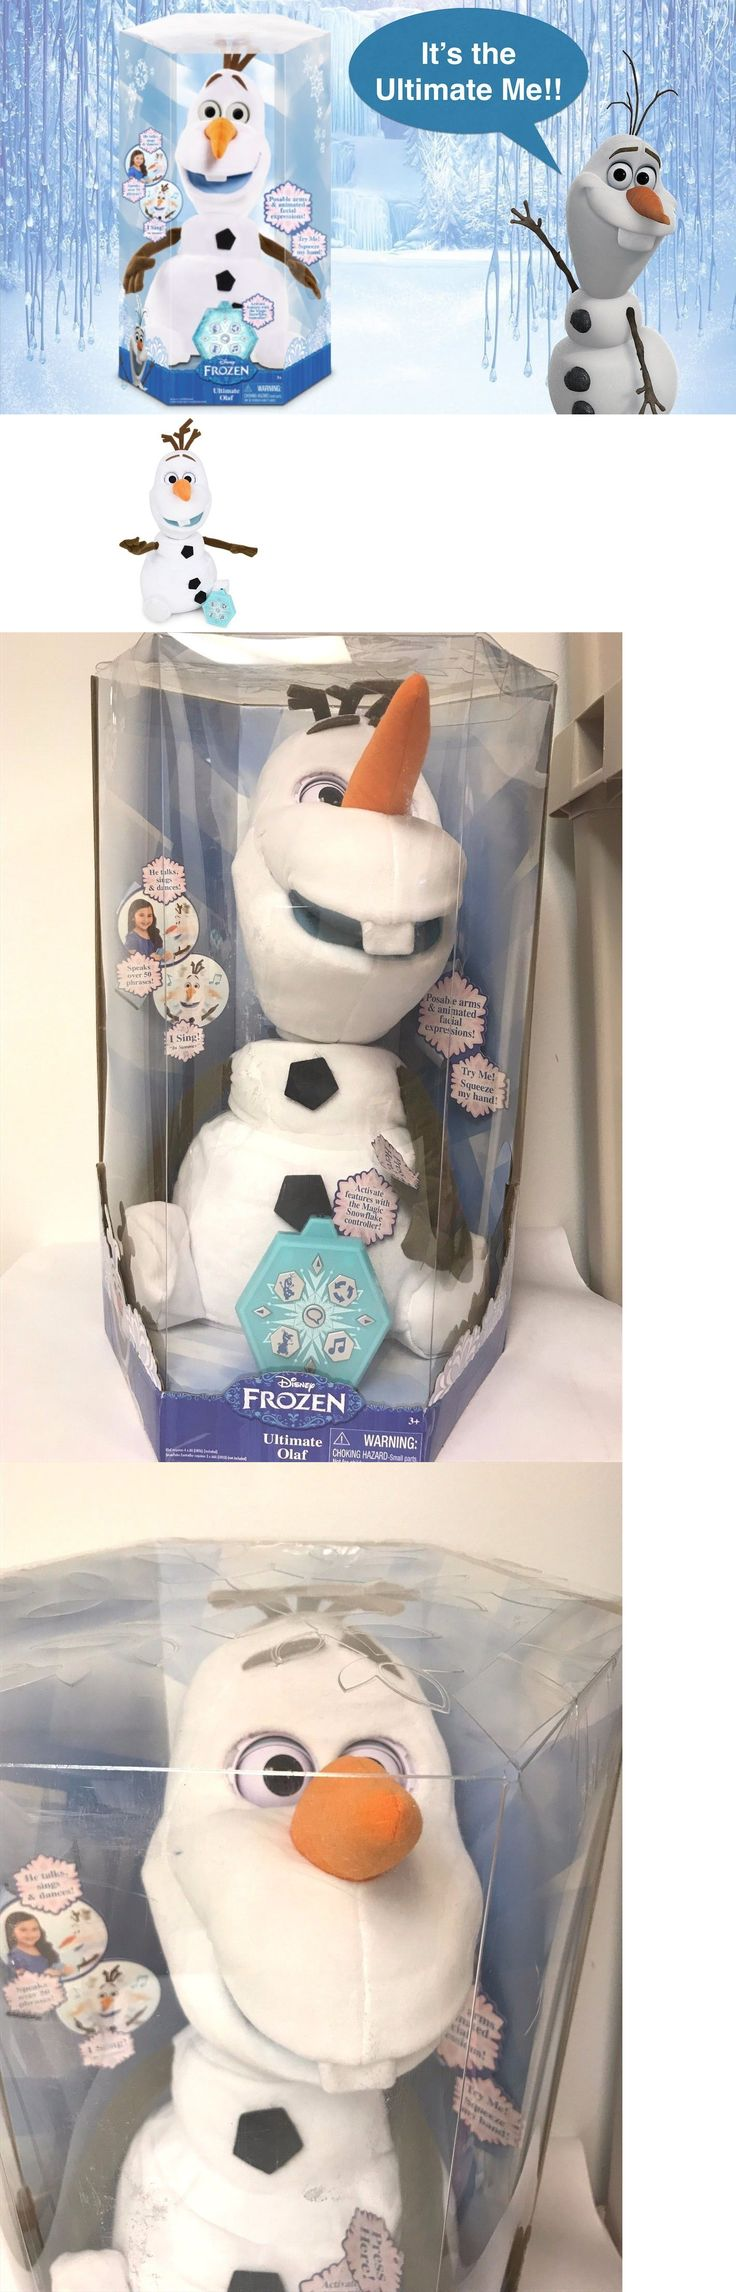 Talking Toys 145945: Disney Frozen Ultimate Olaf He Talks, Sings, And Dances! Brand New -> BUY IT NOW ONLY: $34.99 on eBay!